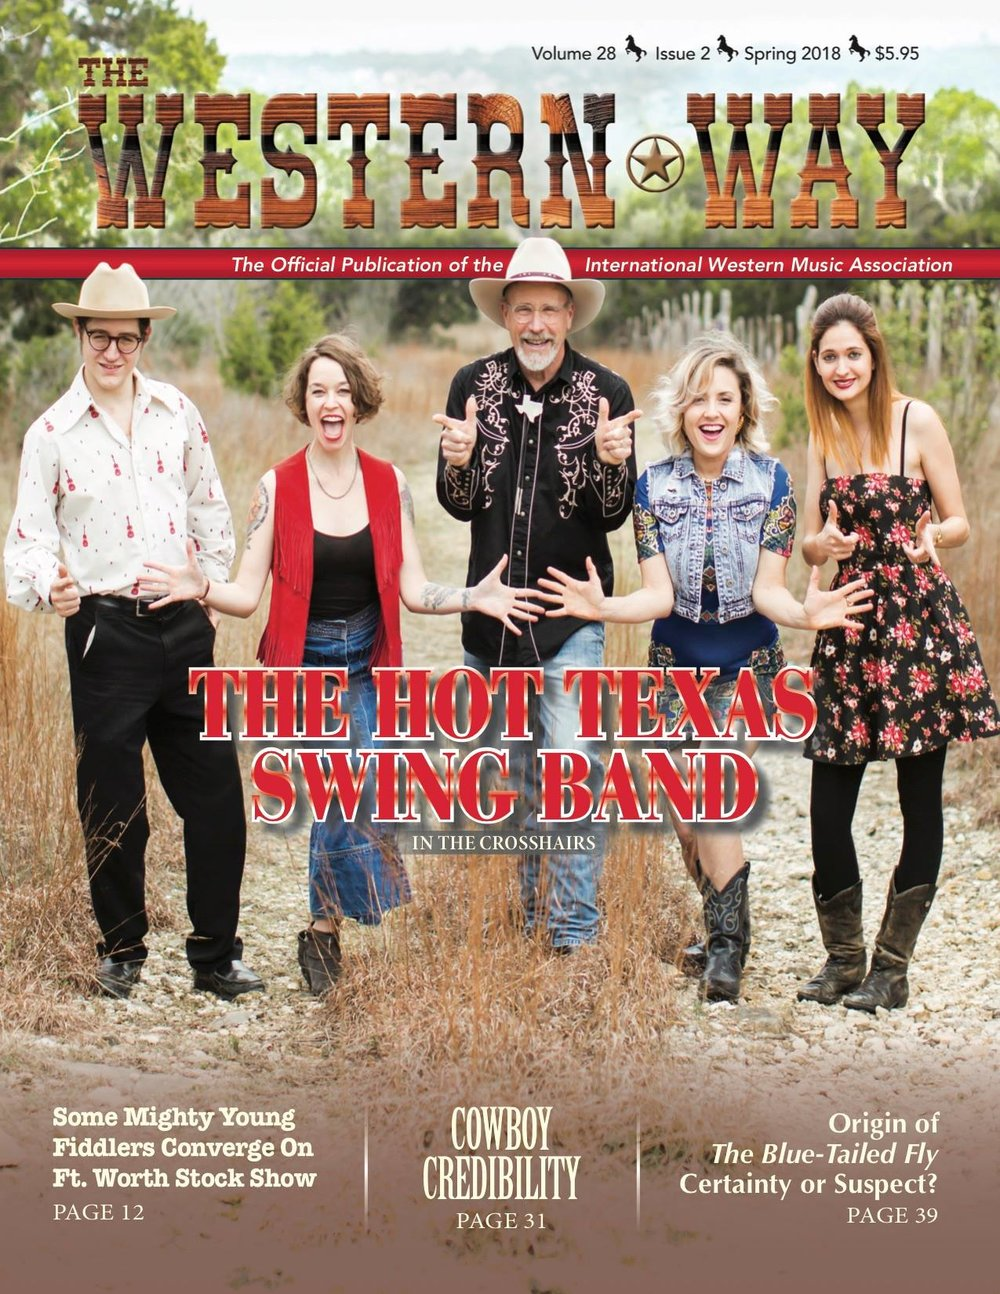 Hot Texas Swing Band Western Way Magazine cover